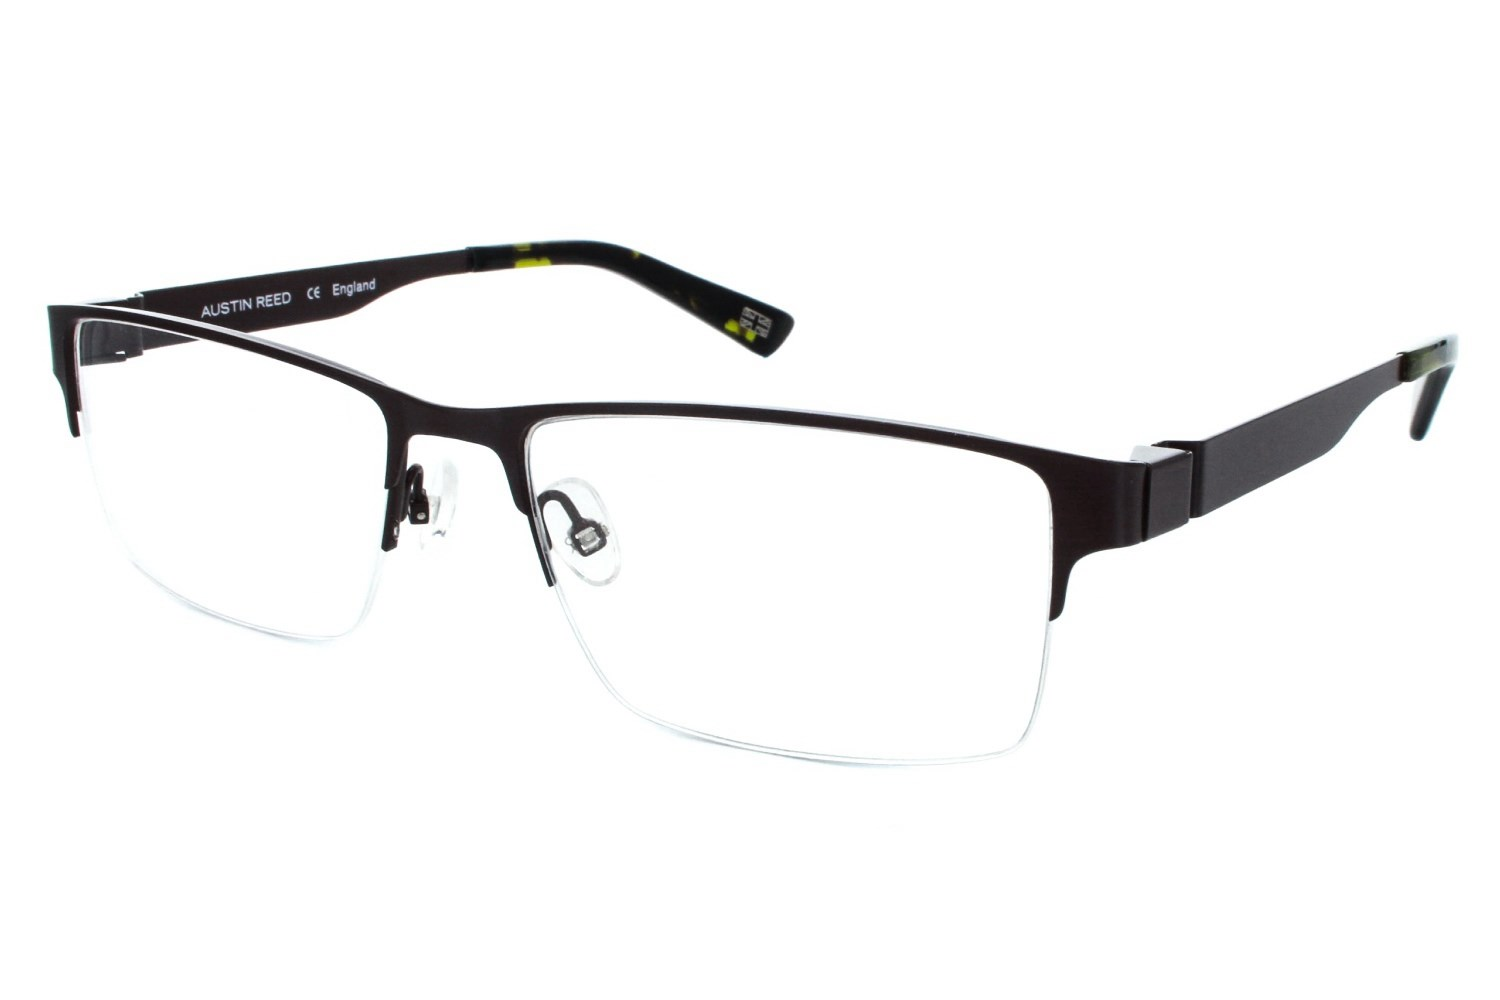 Austin Reed M05 Prescription Eyeglasses